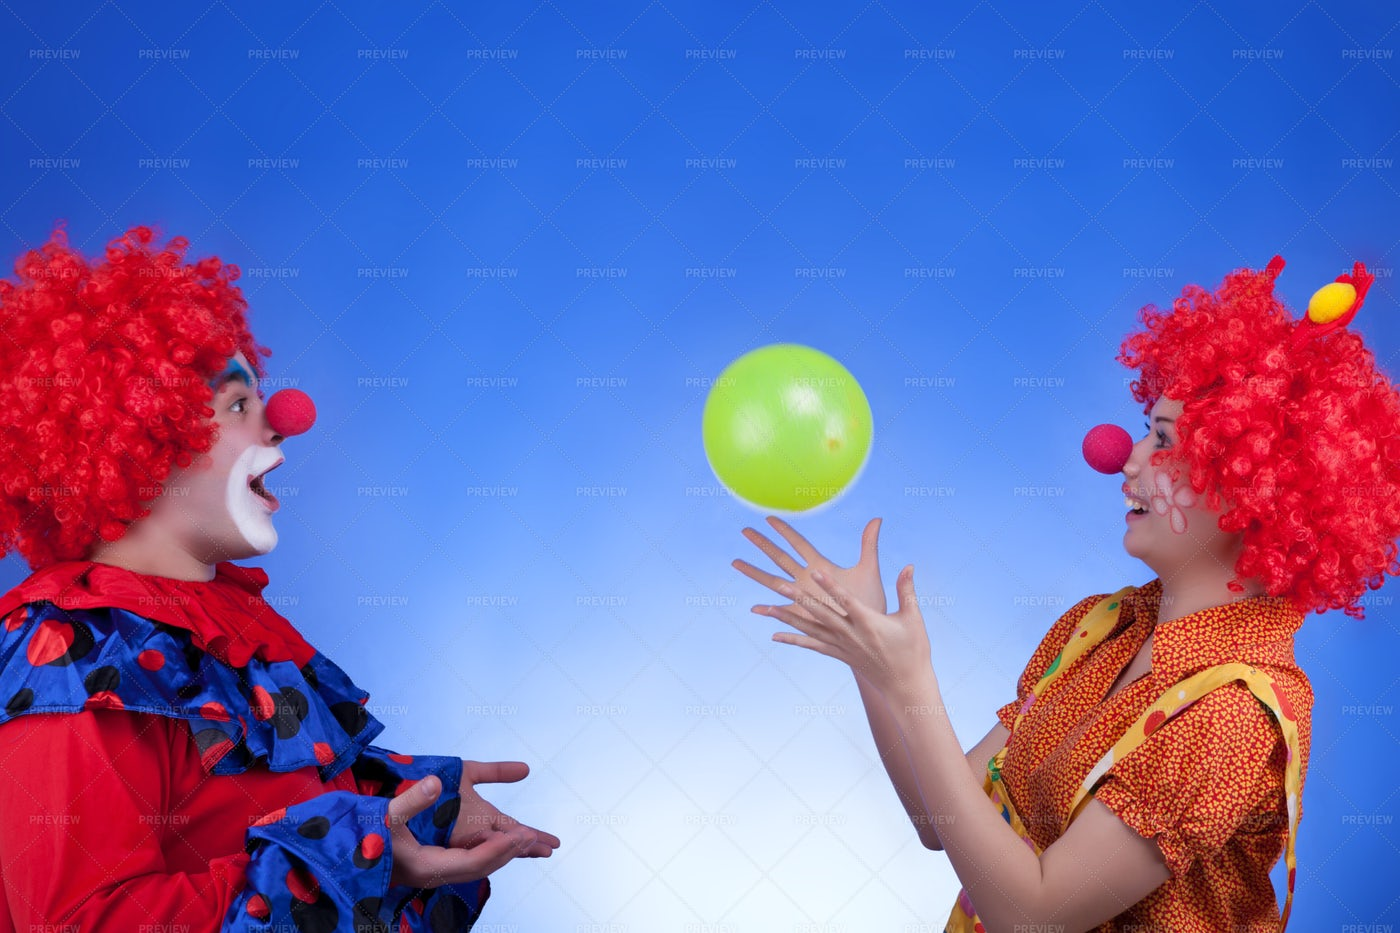 Clowns Playing With A Balloon: Stock Photos